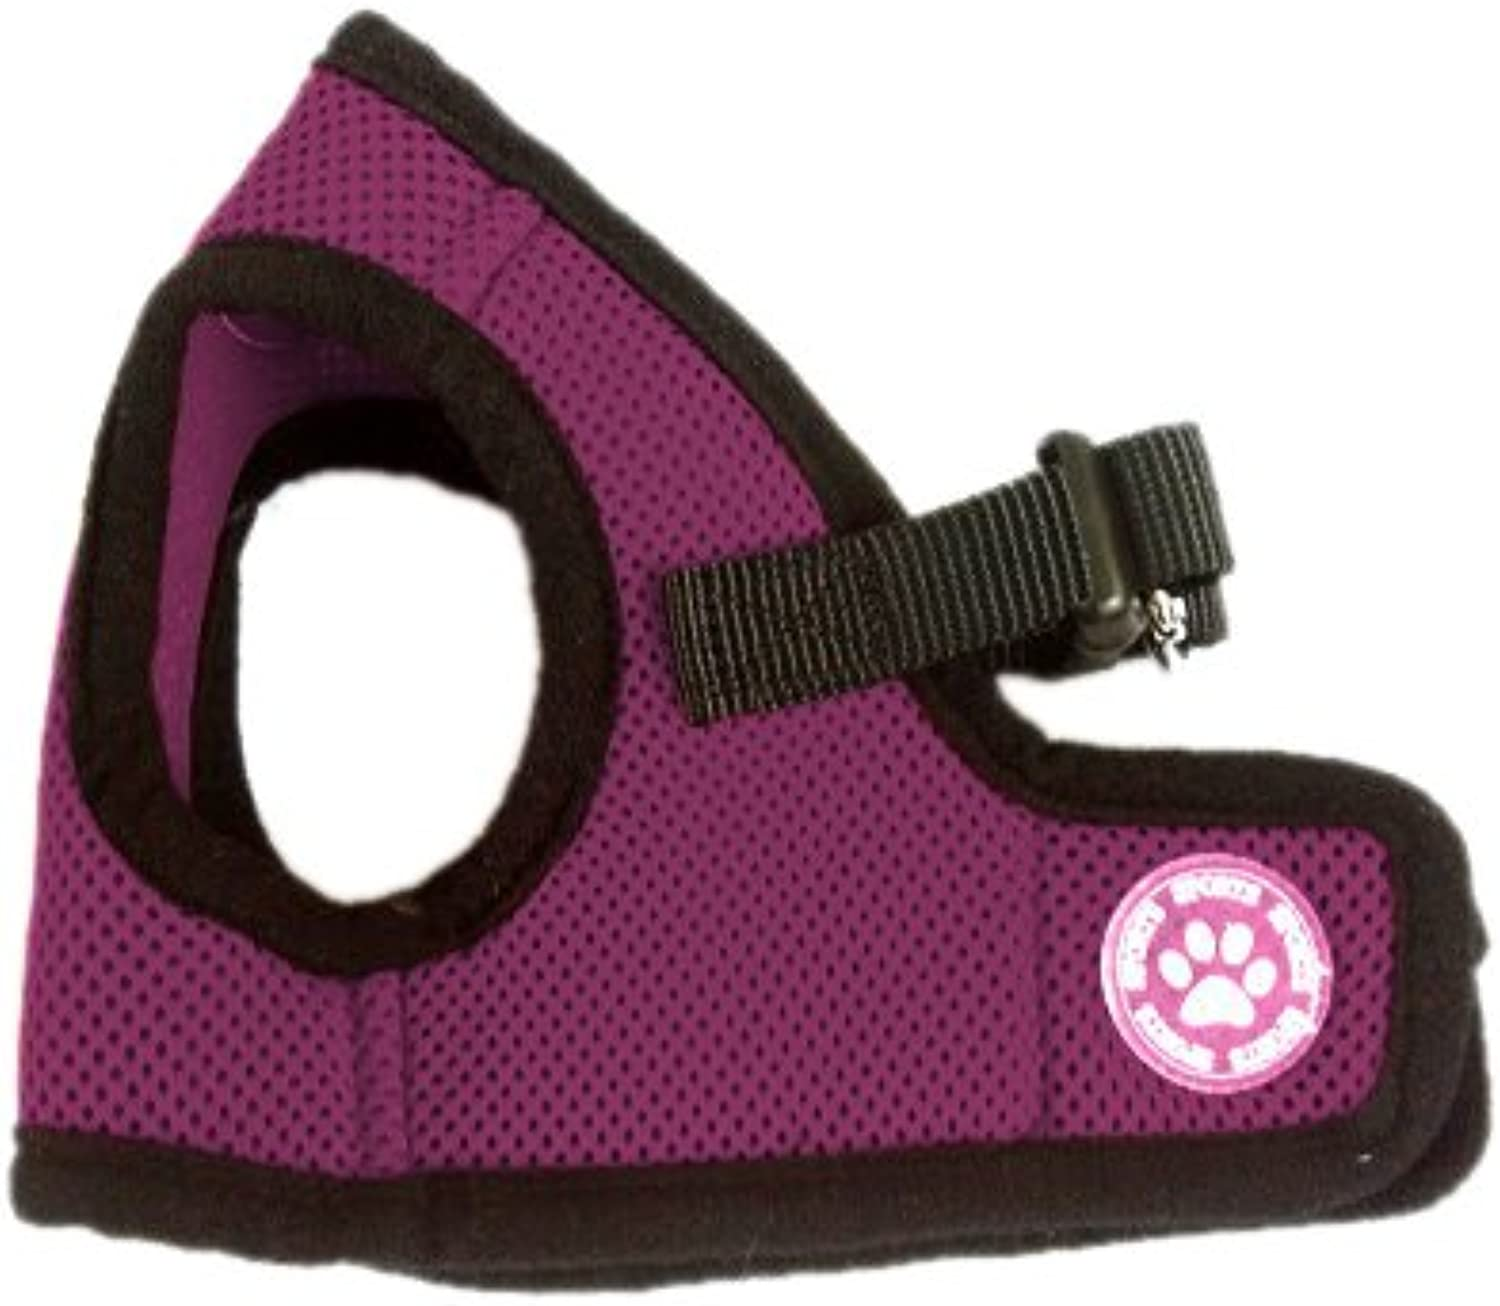 BINGPET BB5005 Classic Soft Vest Dog Puppy Pet Harness Adjustable Large Purple